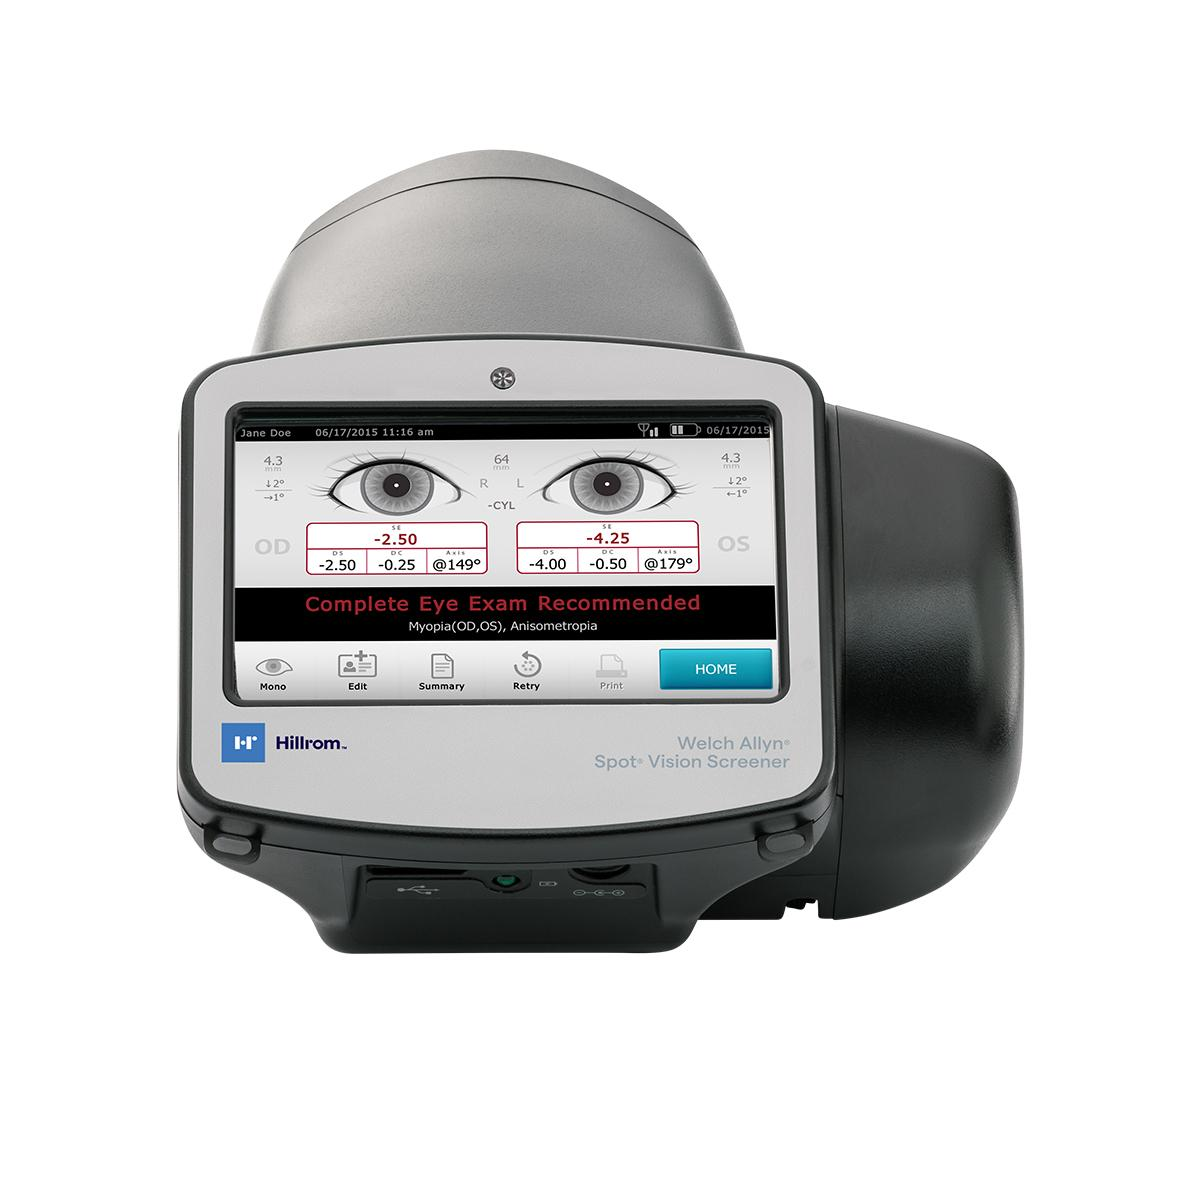 Spot® Vision Screener, straight on view